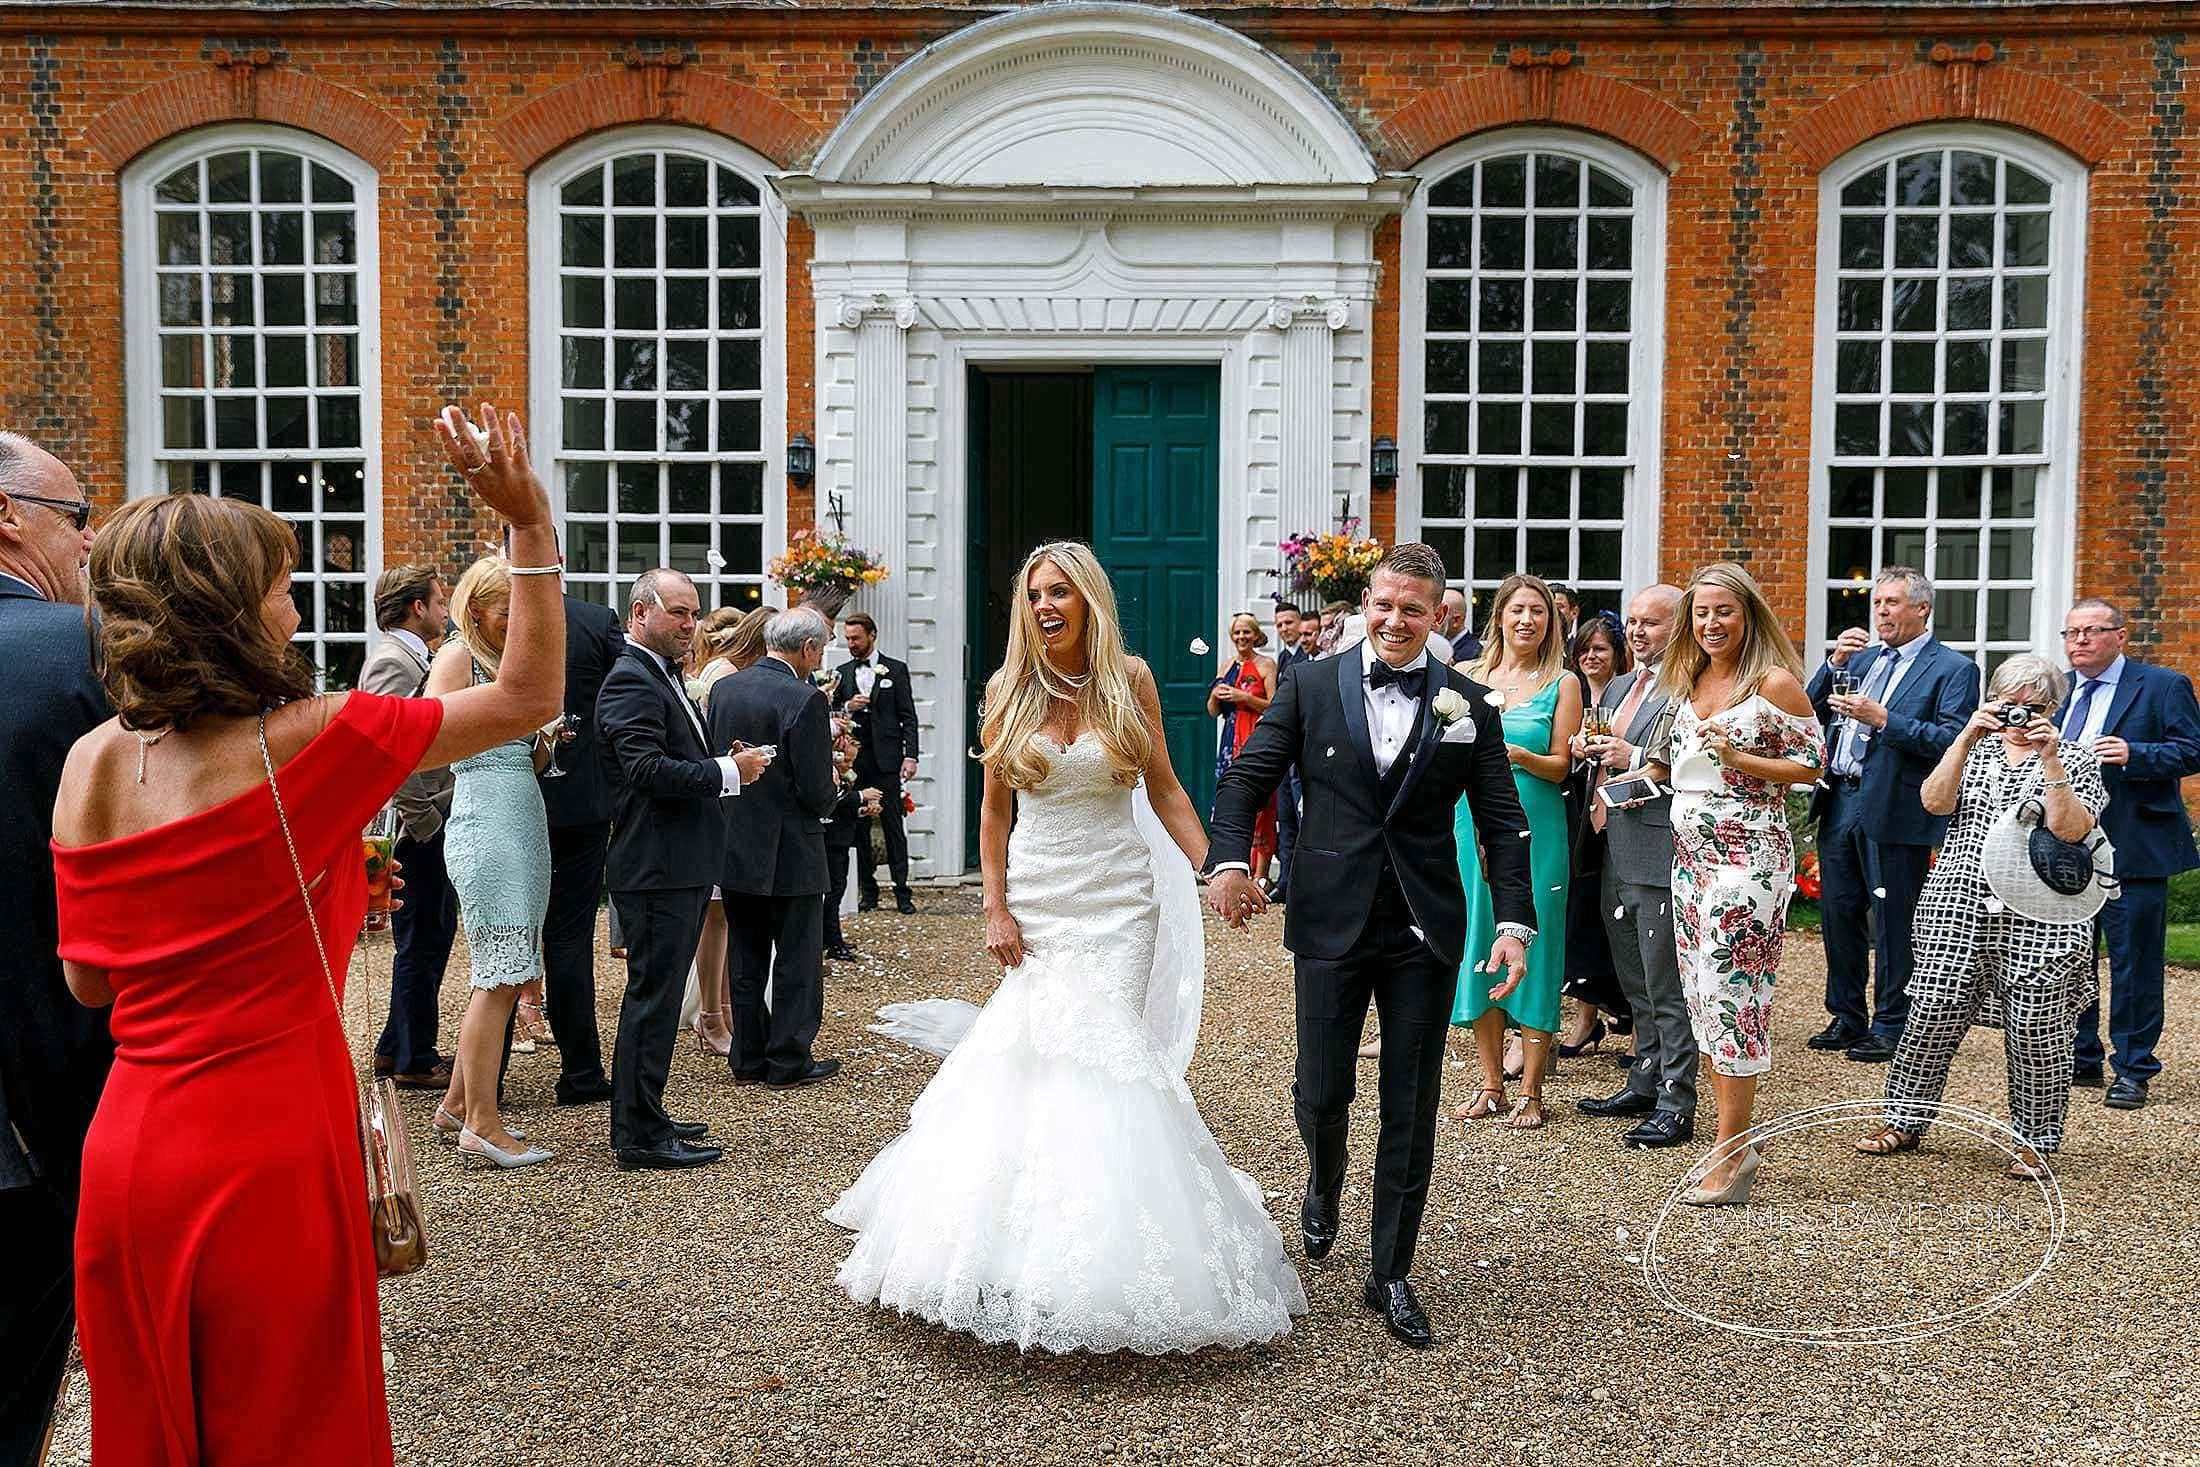 gosfield-hall-wedding-photography-068